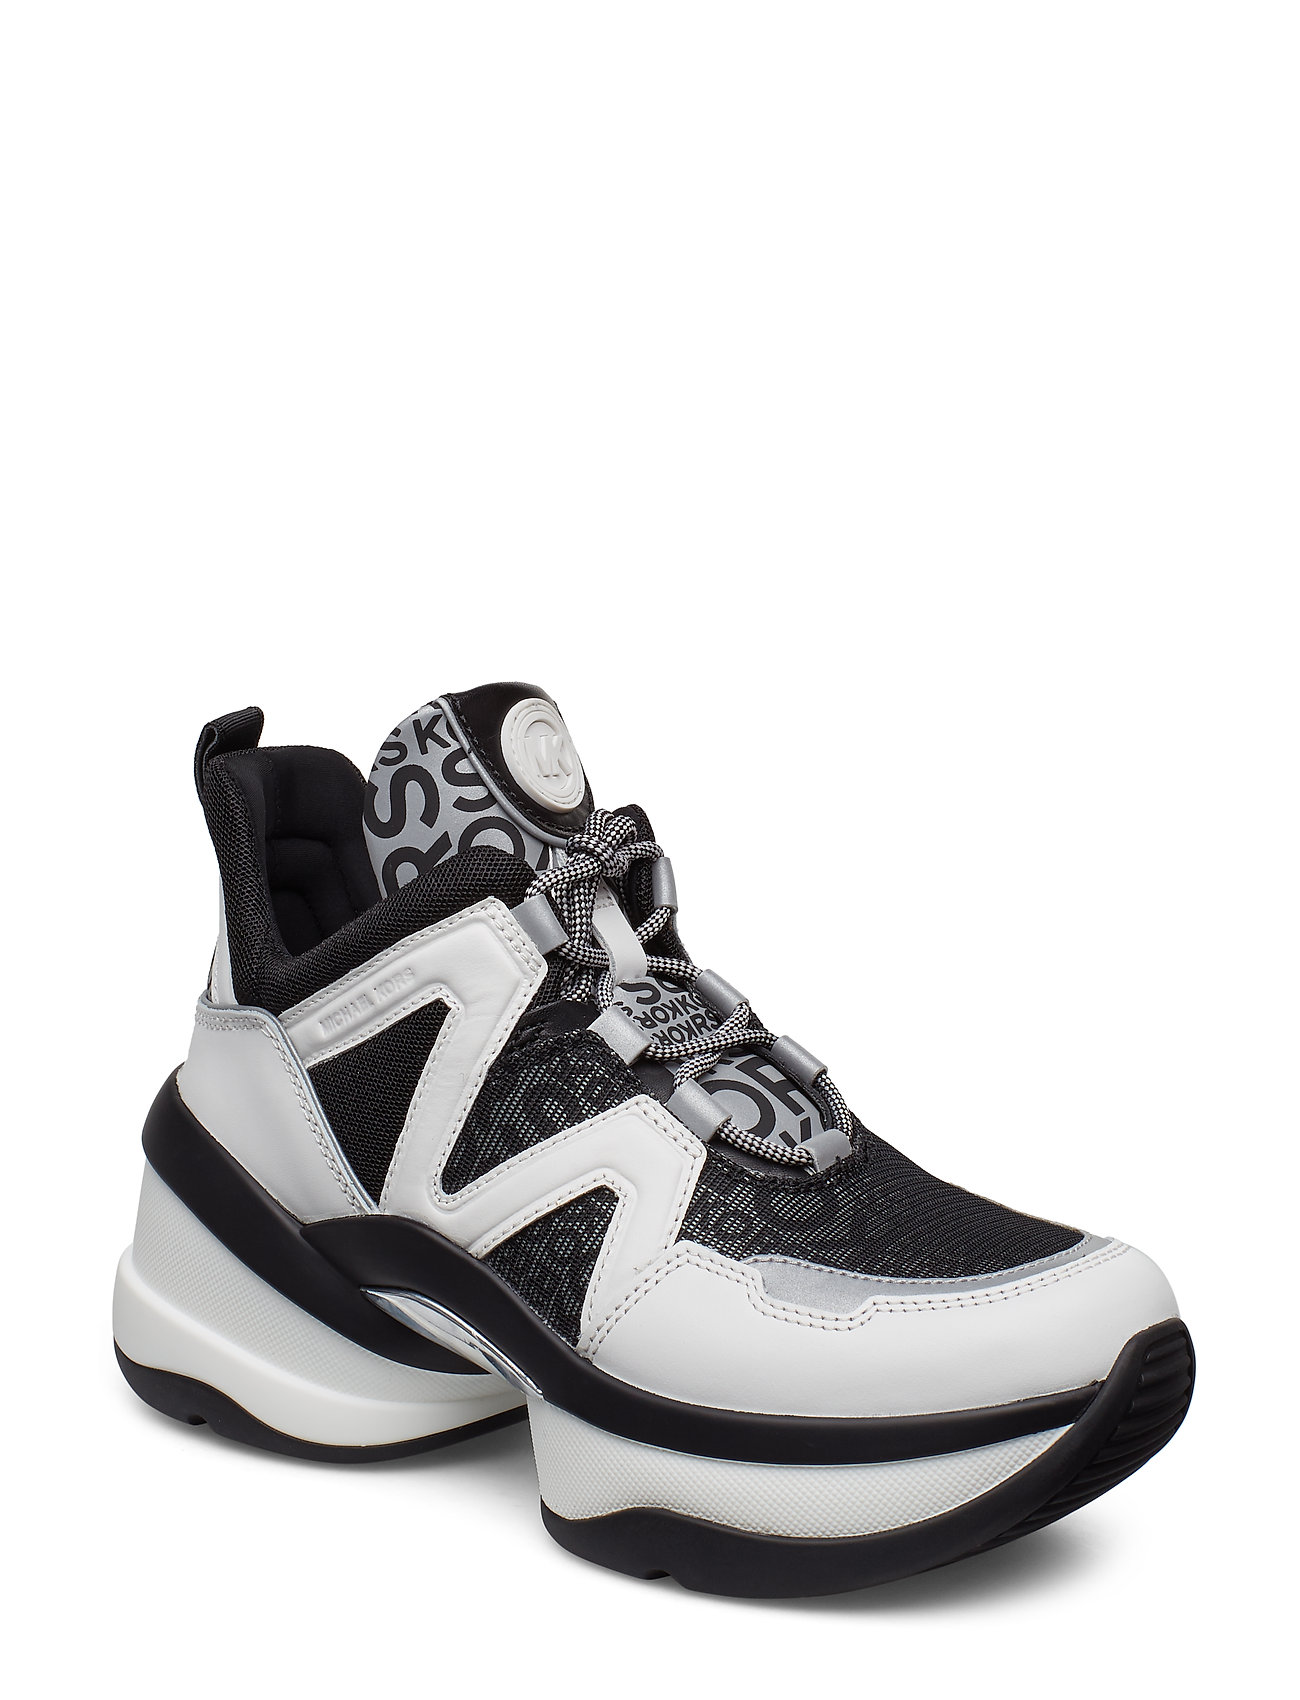 Michael Kors Shoes OLYMPIA TRAINER - OPWHT MULTI